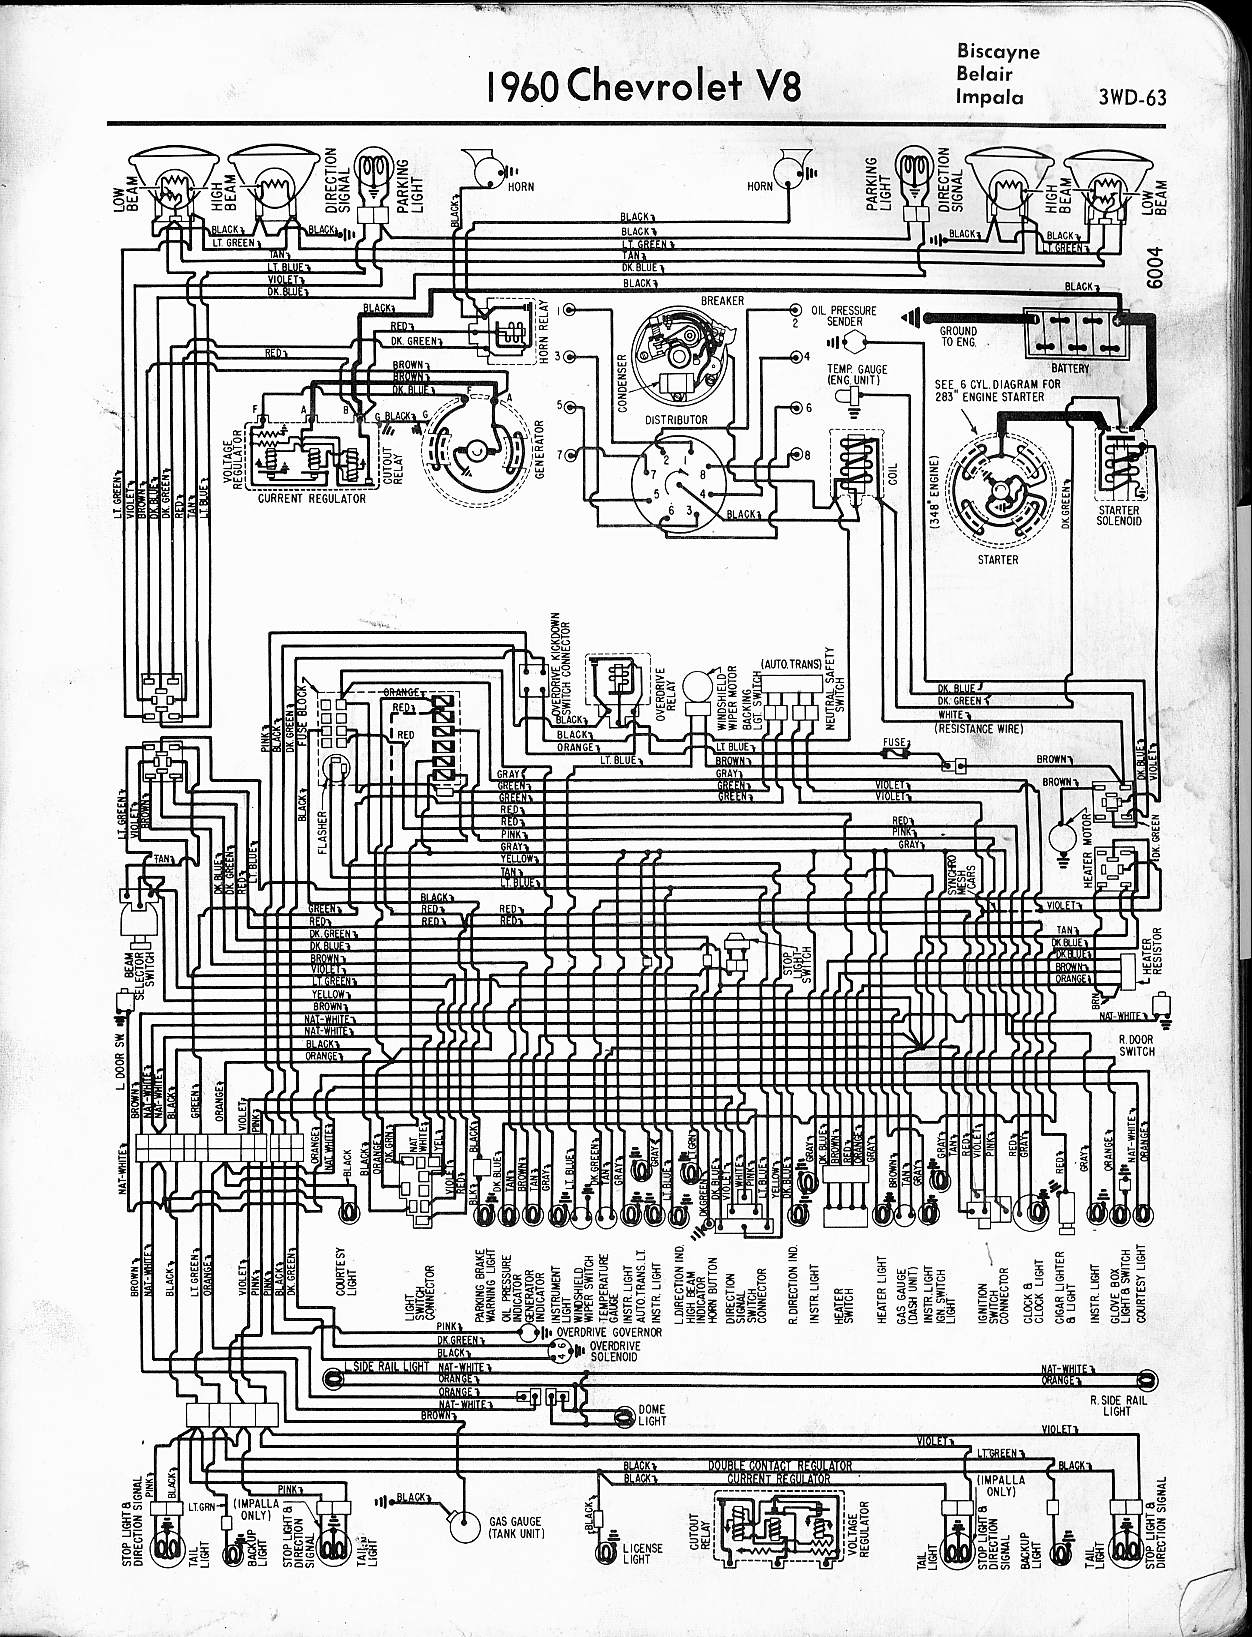 Wiring Diagram For 57 Chevy V8 Diagrams 1957 Chevrolet Fuse Box 1960 Impala Ss Schemes Dash